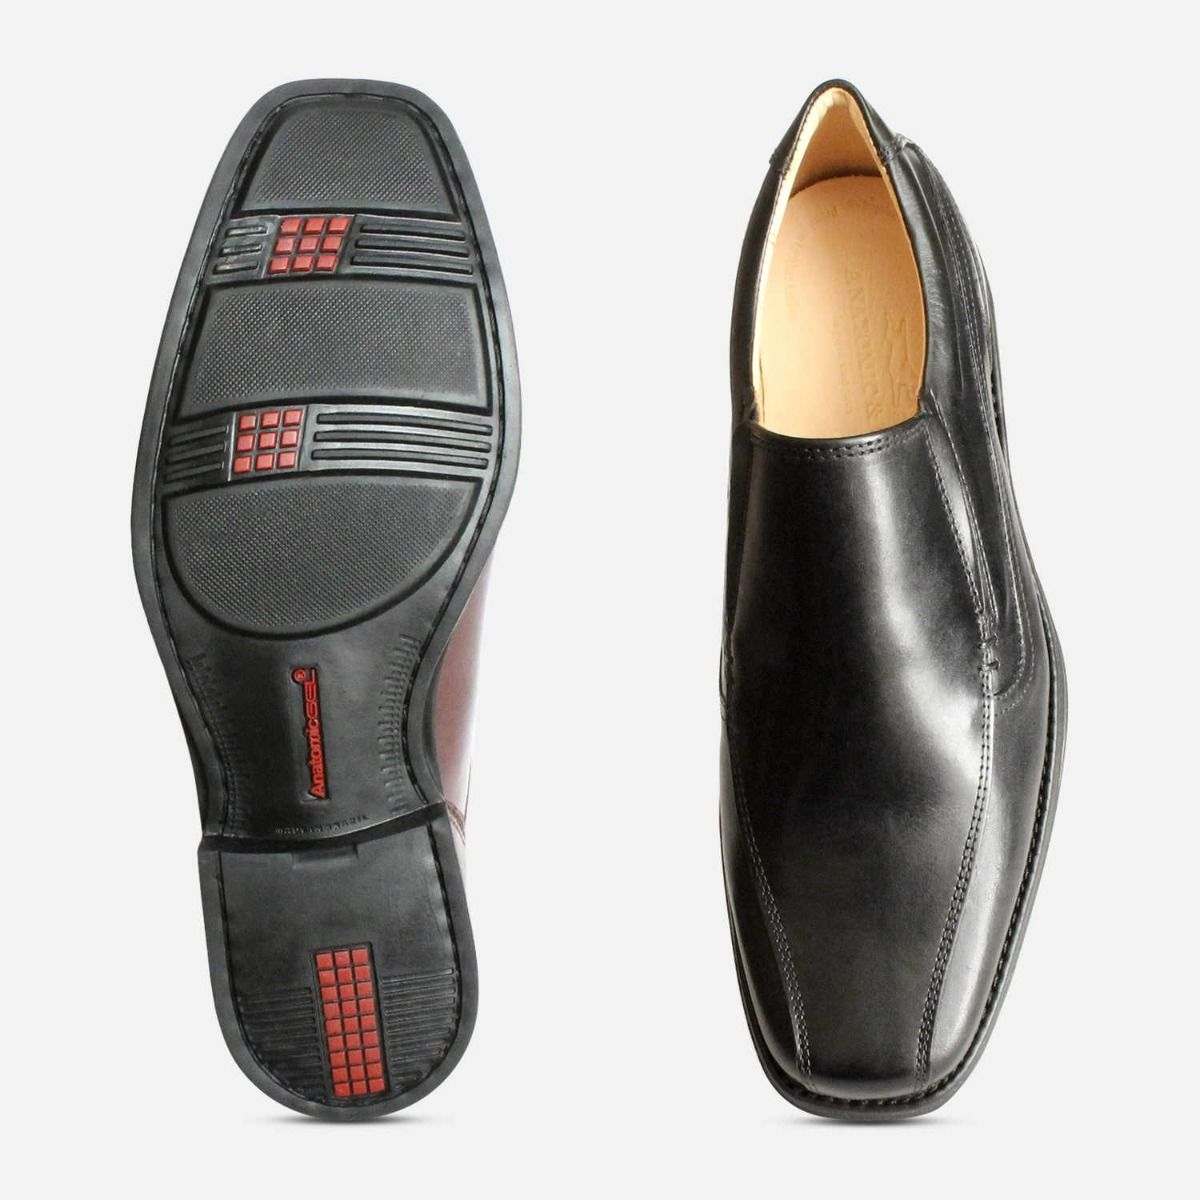 Square Toe Formal Loafers in Black by Anatomic Shoes